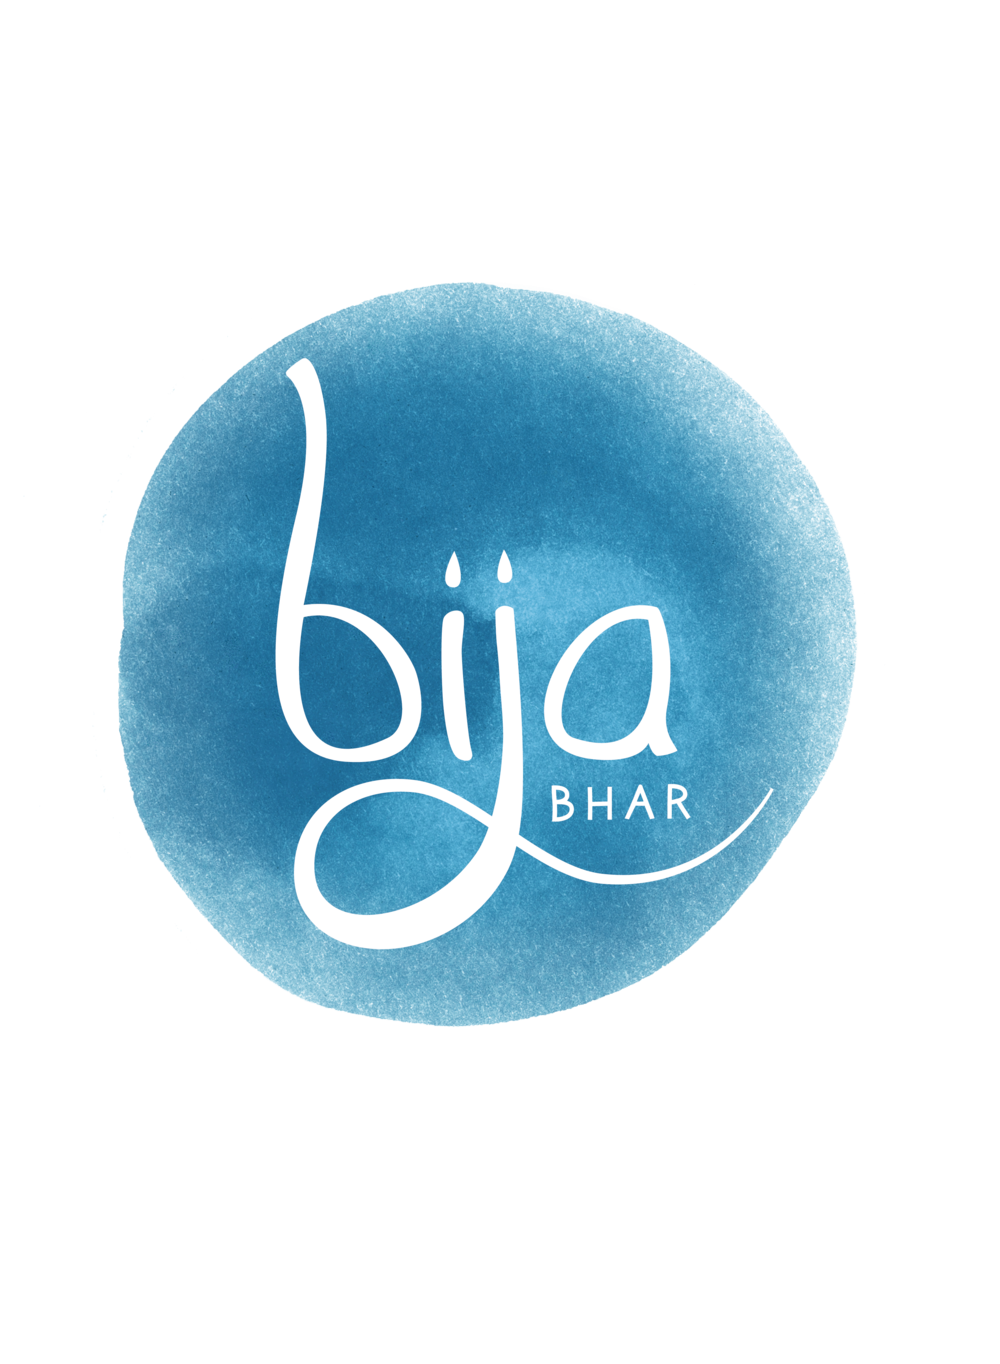 BIJA BHAR Brand, Packaging